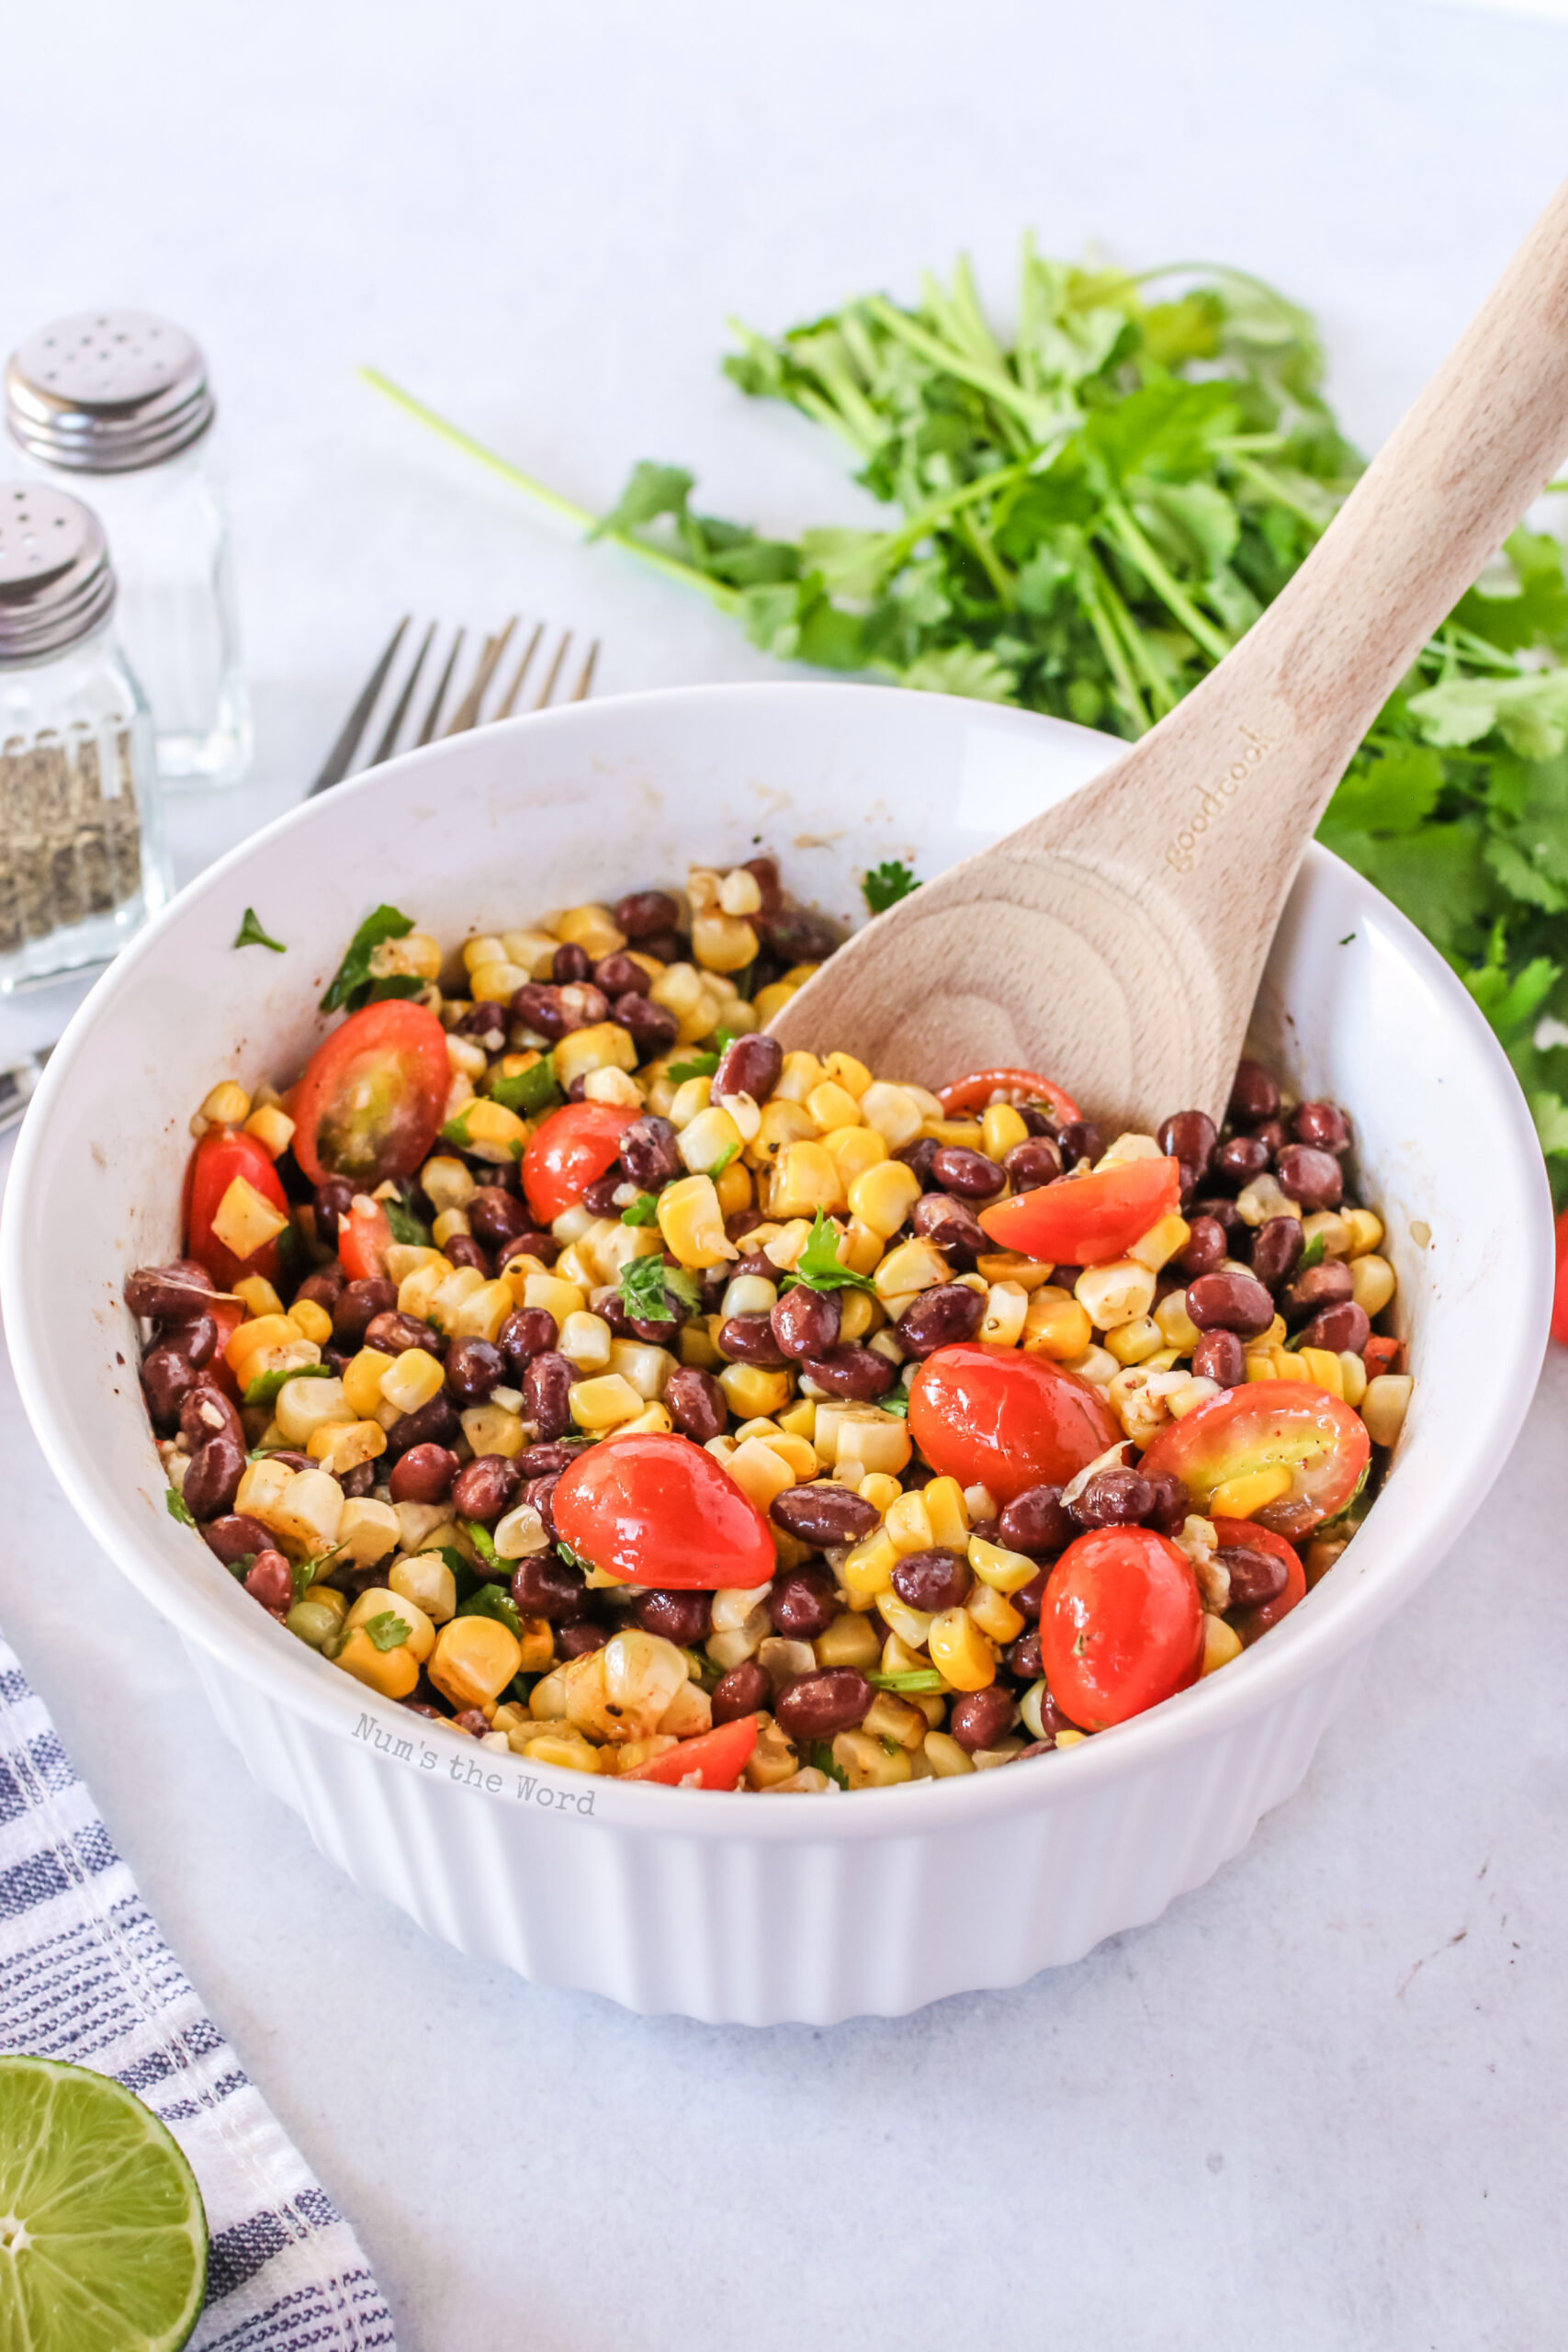 grilled corn salad in a bowl. zoomed out image with wooden spoon.